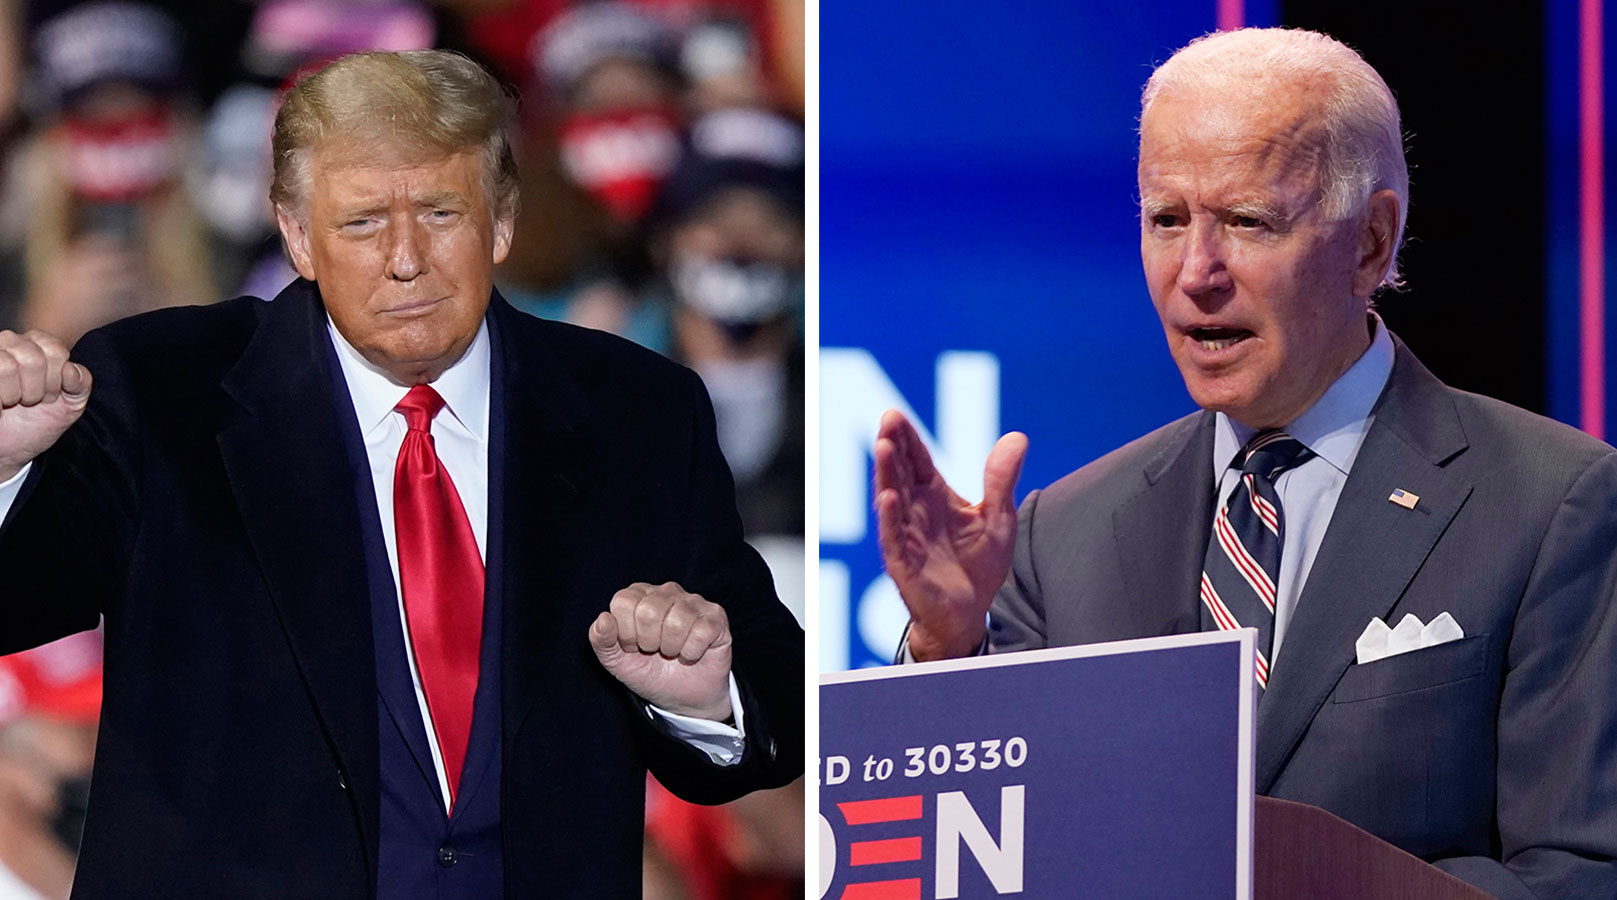 First presidential debate with Trump vs. Biden is next week: What to know, how to watch - al.com